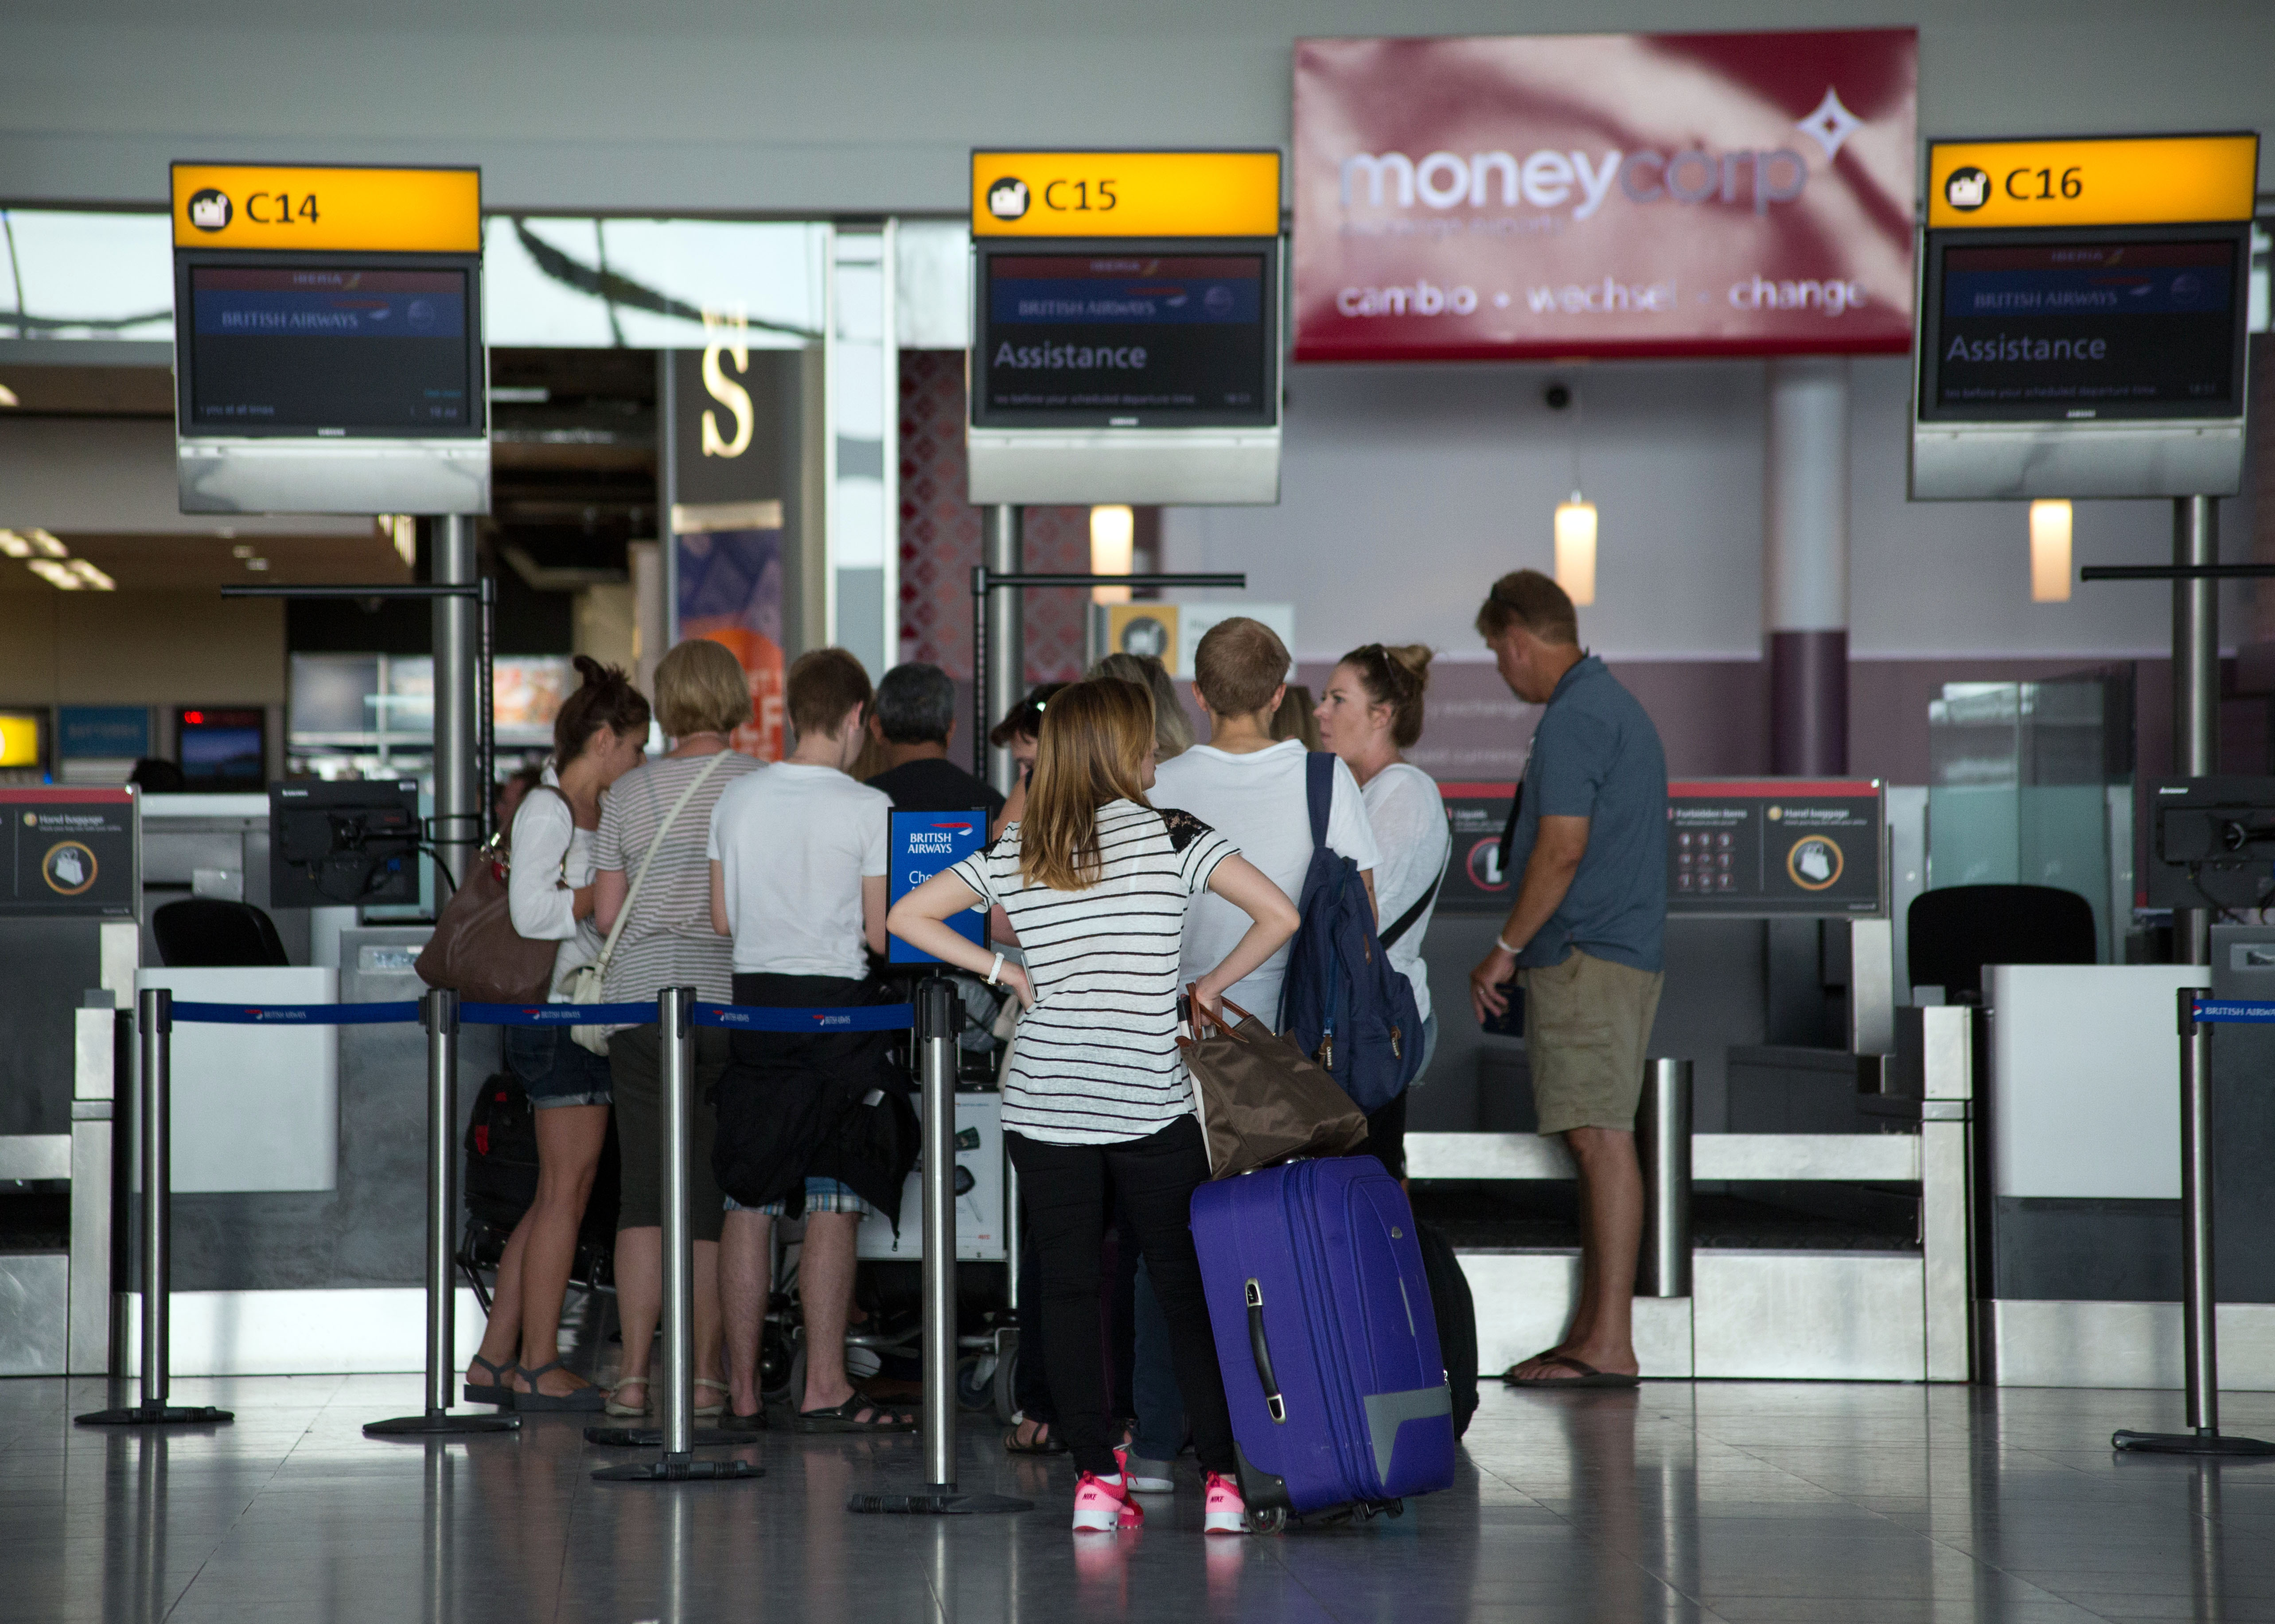 Passengers queues to drop their bags off as they check-in for their flights in Terminal 5 of Heathrow Airport.